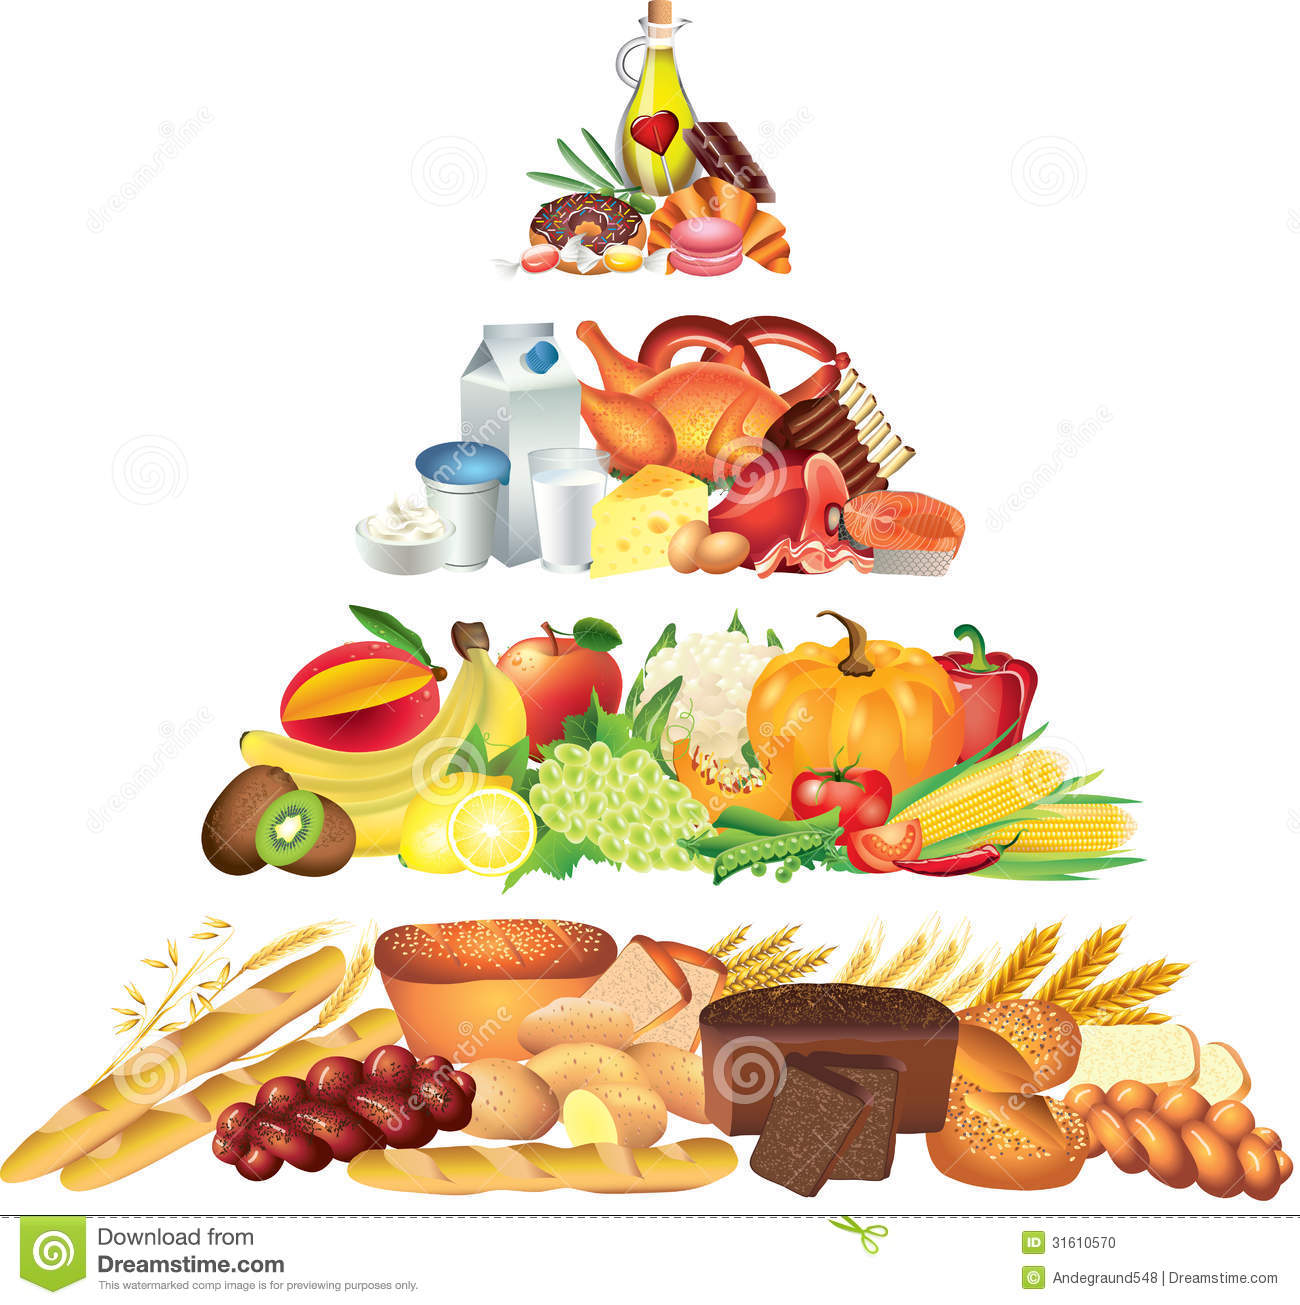 Food Pyramid Photo Realistic Illustration Stock Photo - Image ...